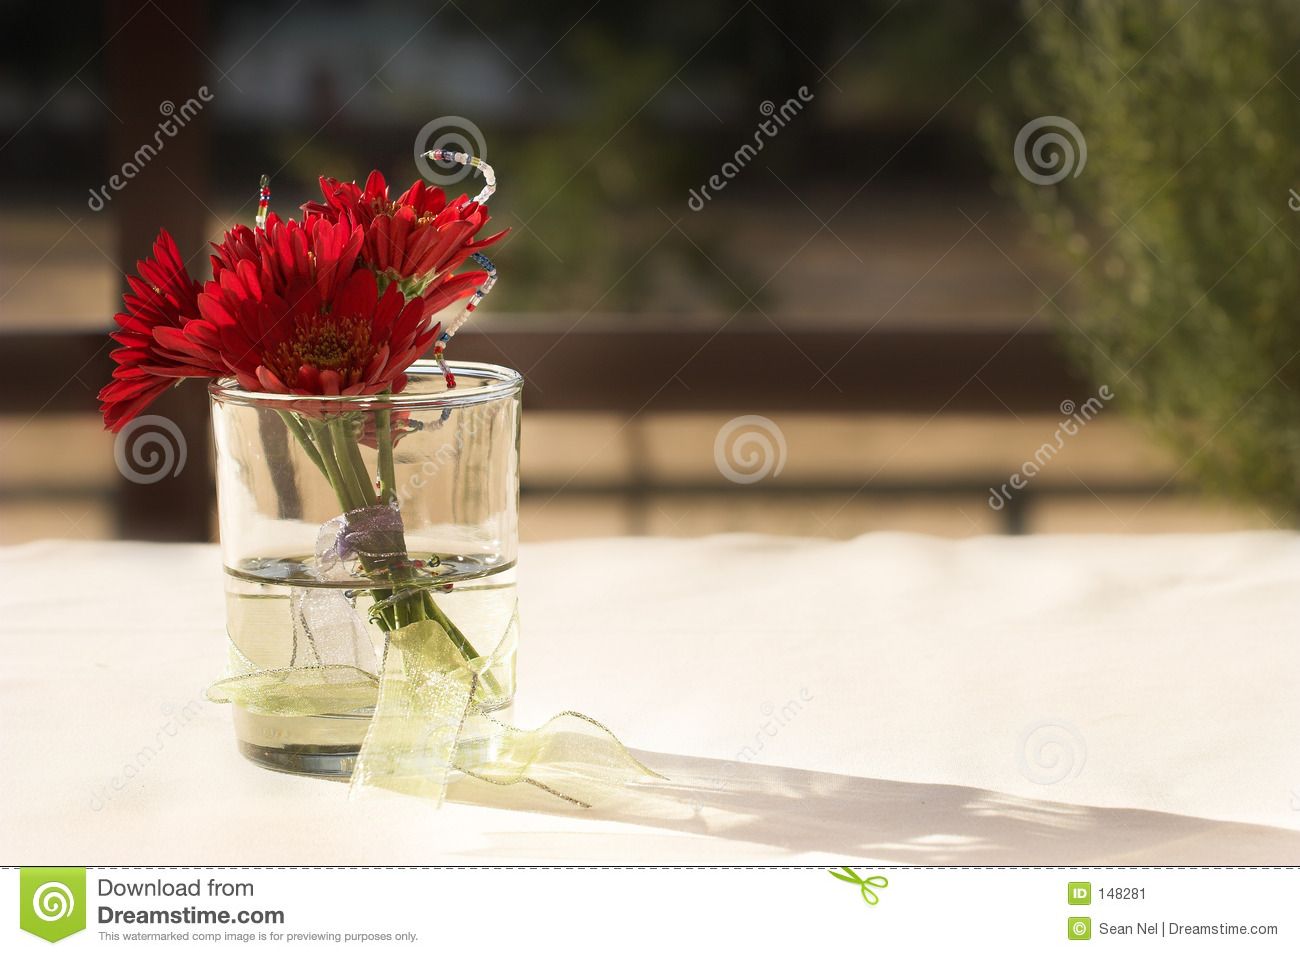 Download Flowers #2 stock image. Image of flowers, sunshine, daisy - 148281